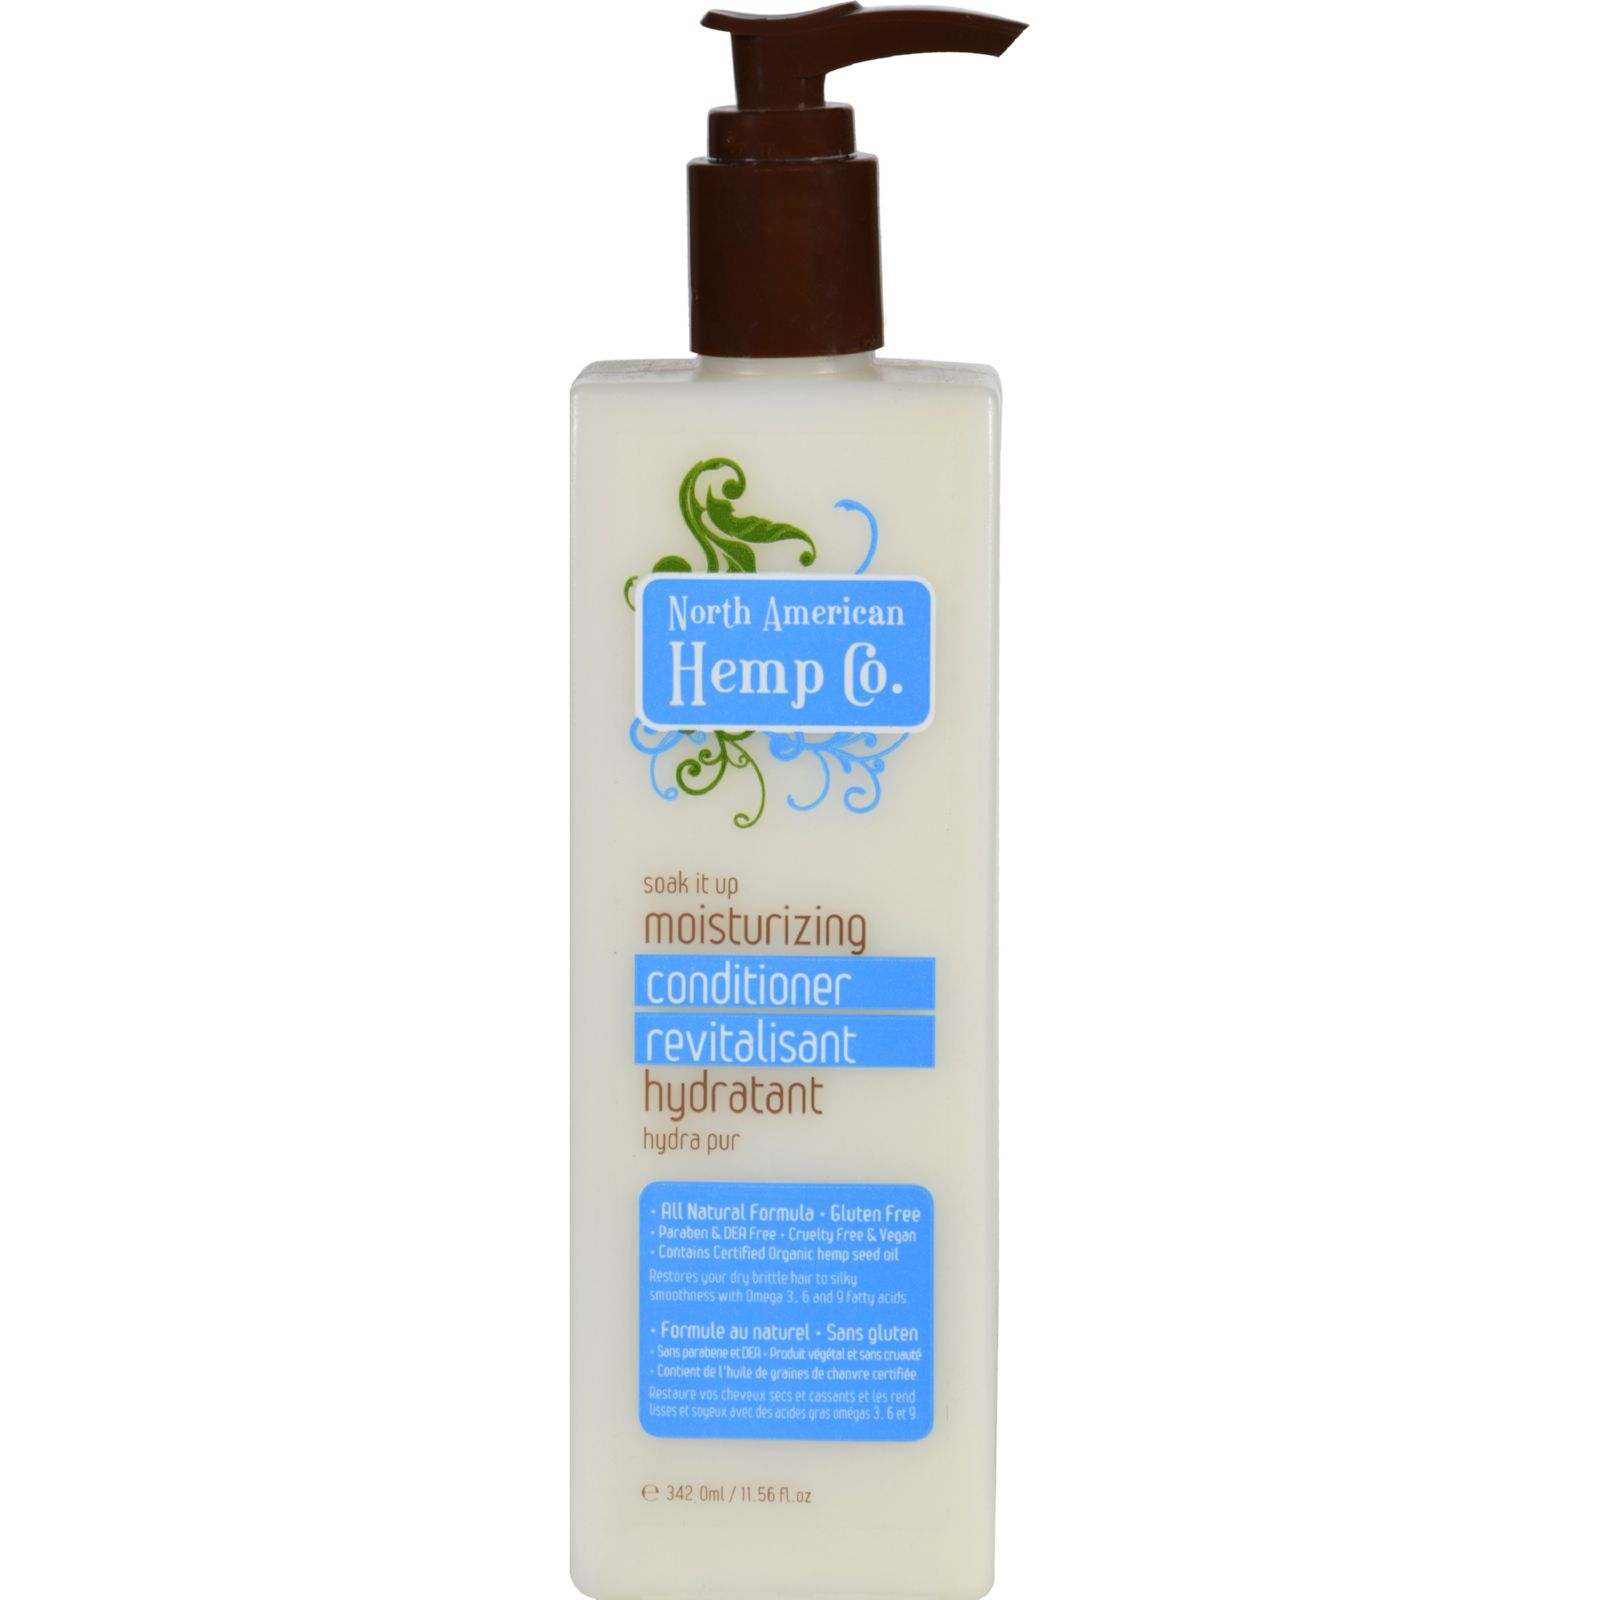 North American Hemp Company Conditioner - Moisturizing - 11.56 Fl Oz